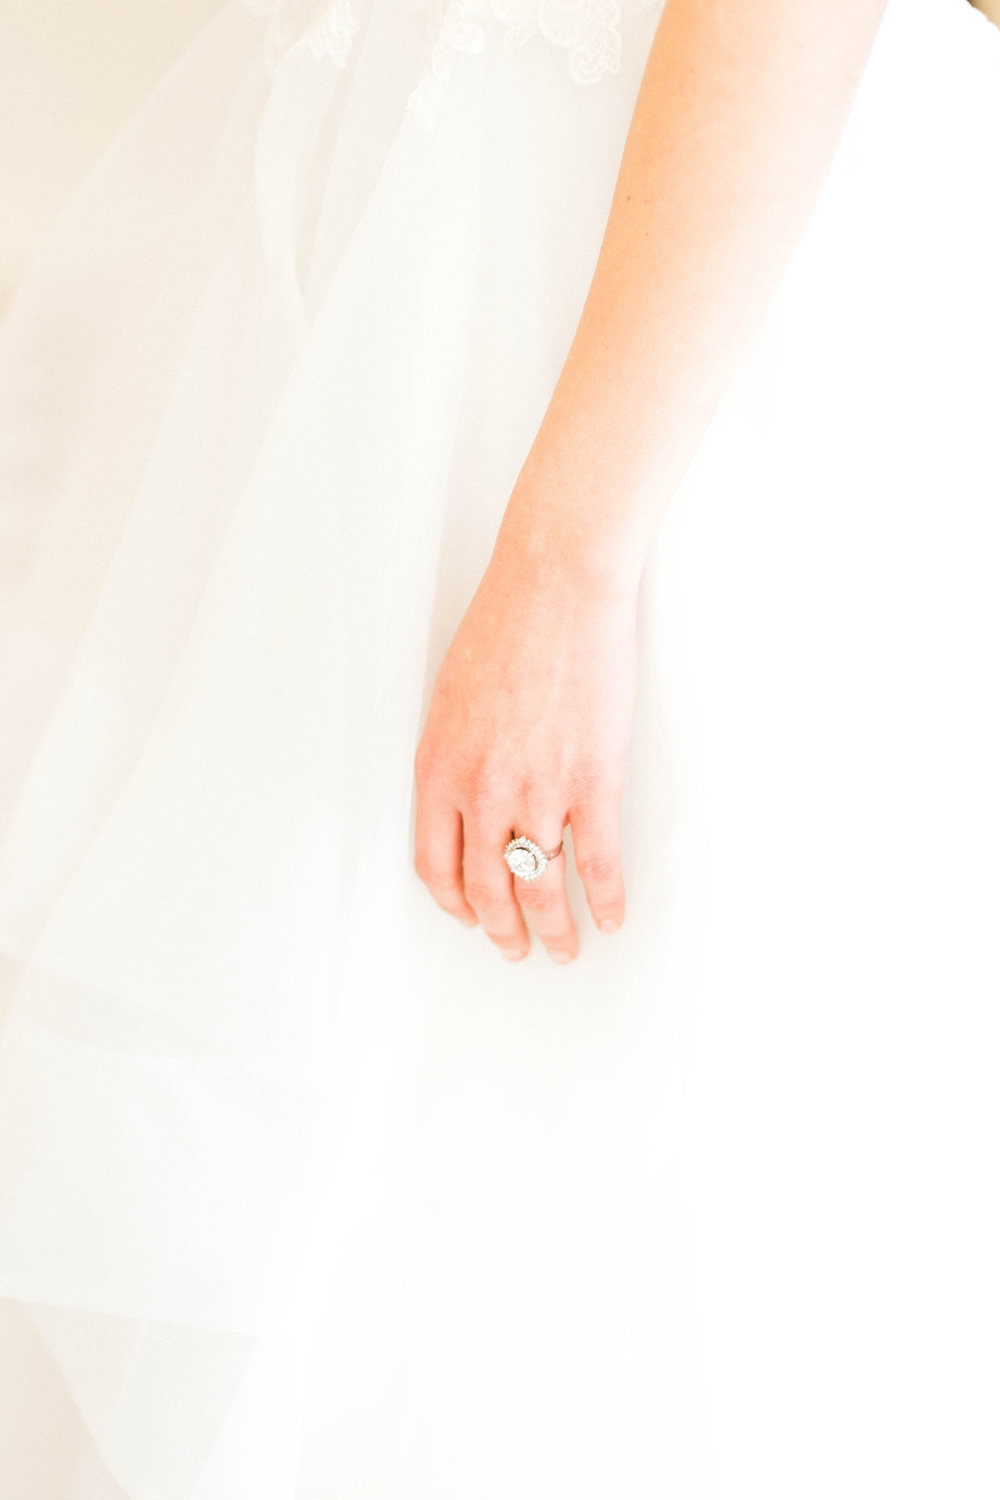 An oval engagement ring on a bride's finger